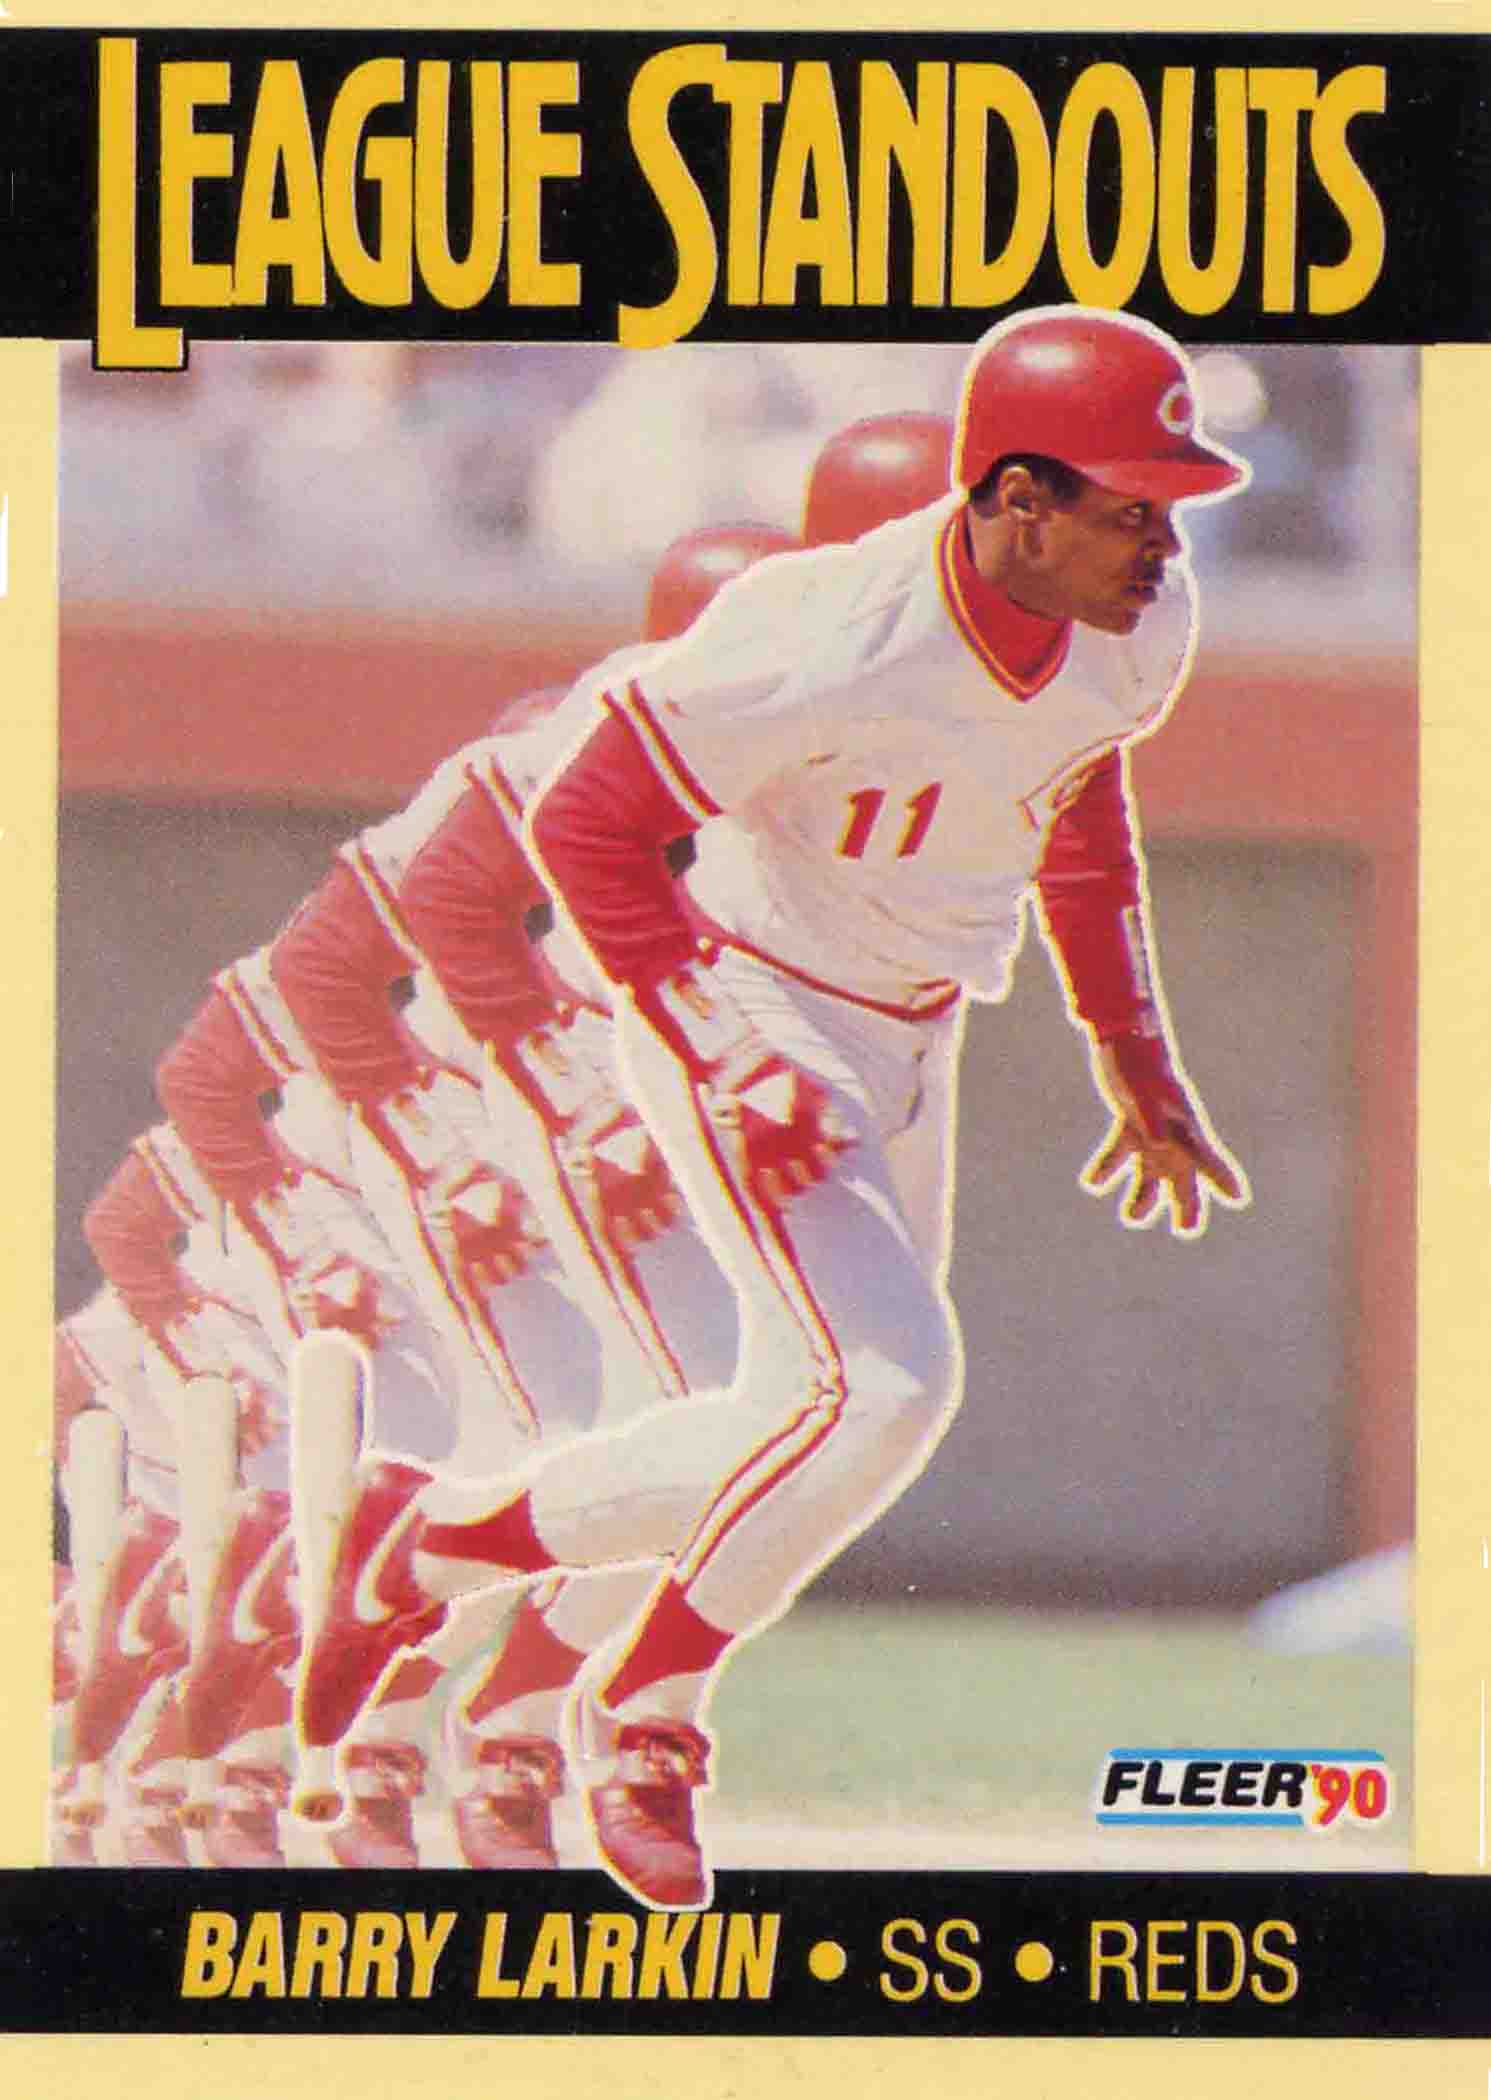 1990 Fleer League Standouts